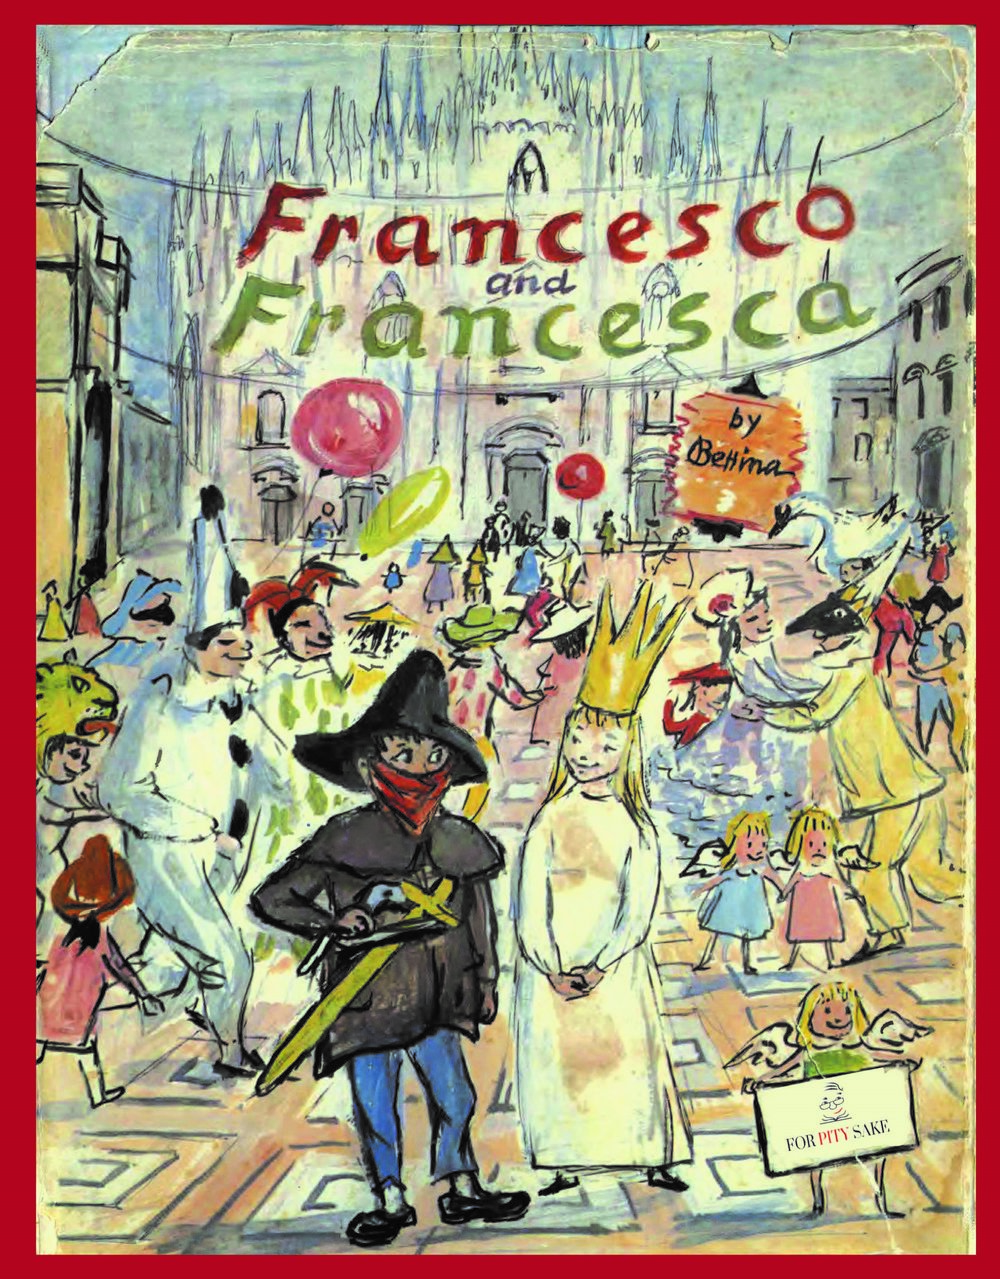 COVER FRONT - Francesco&Francesca by Bettina.jpg